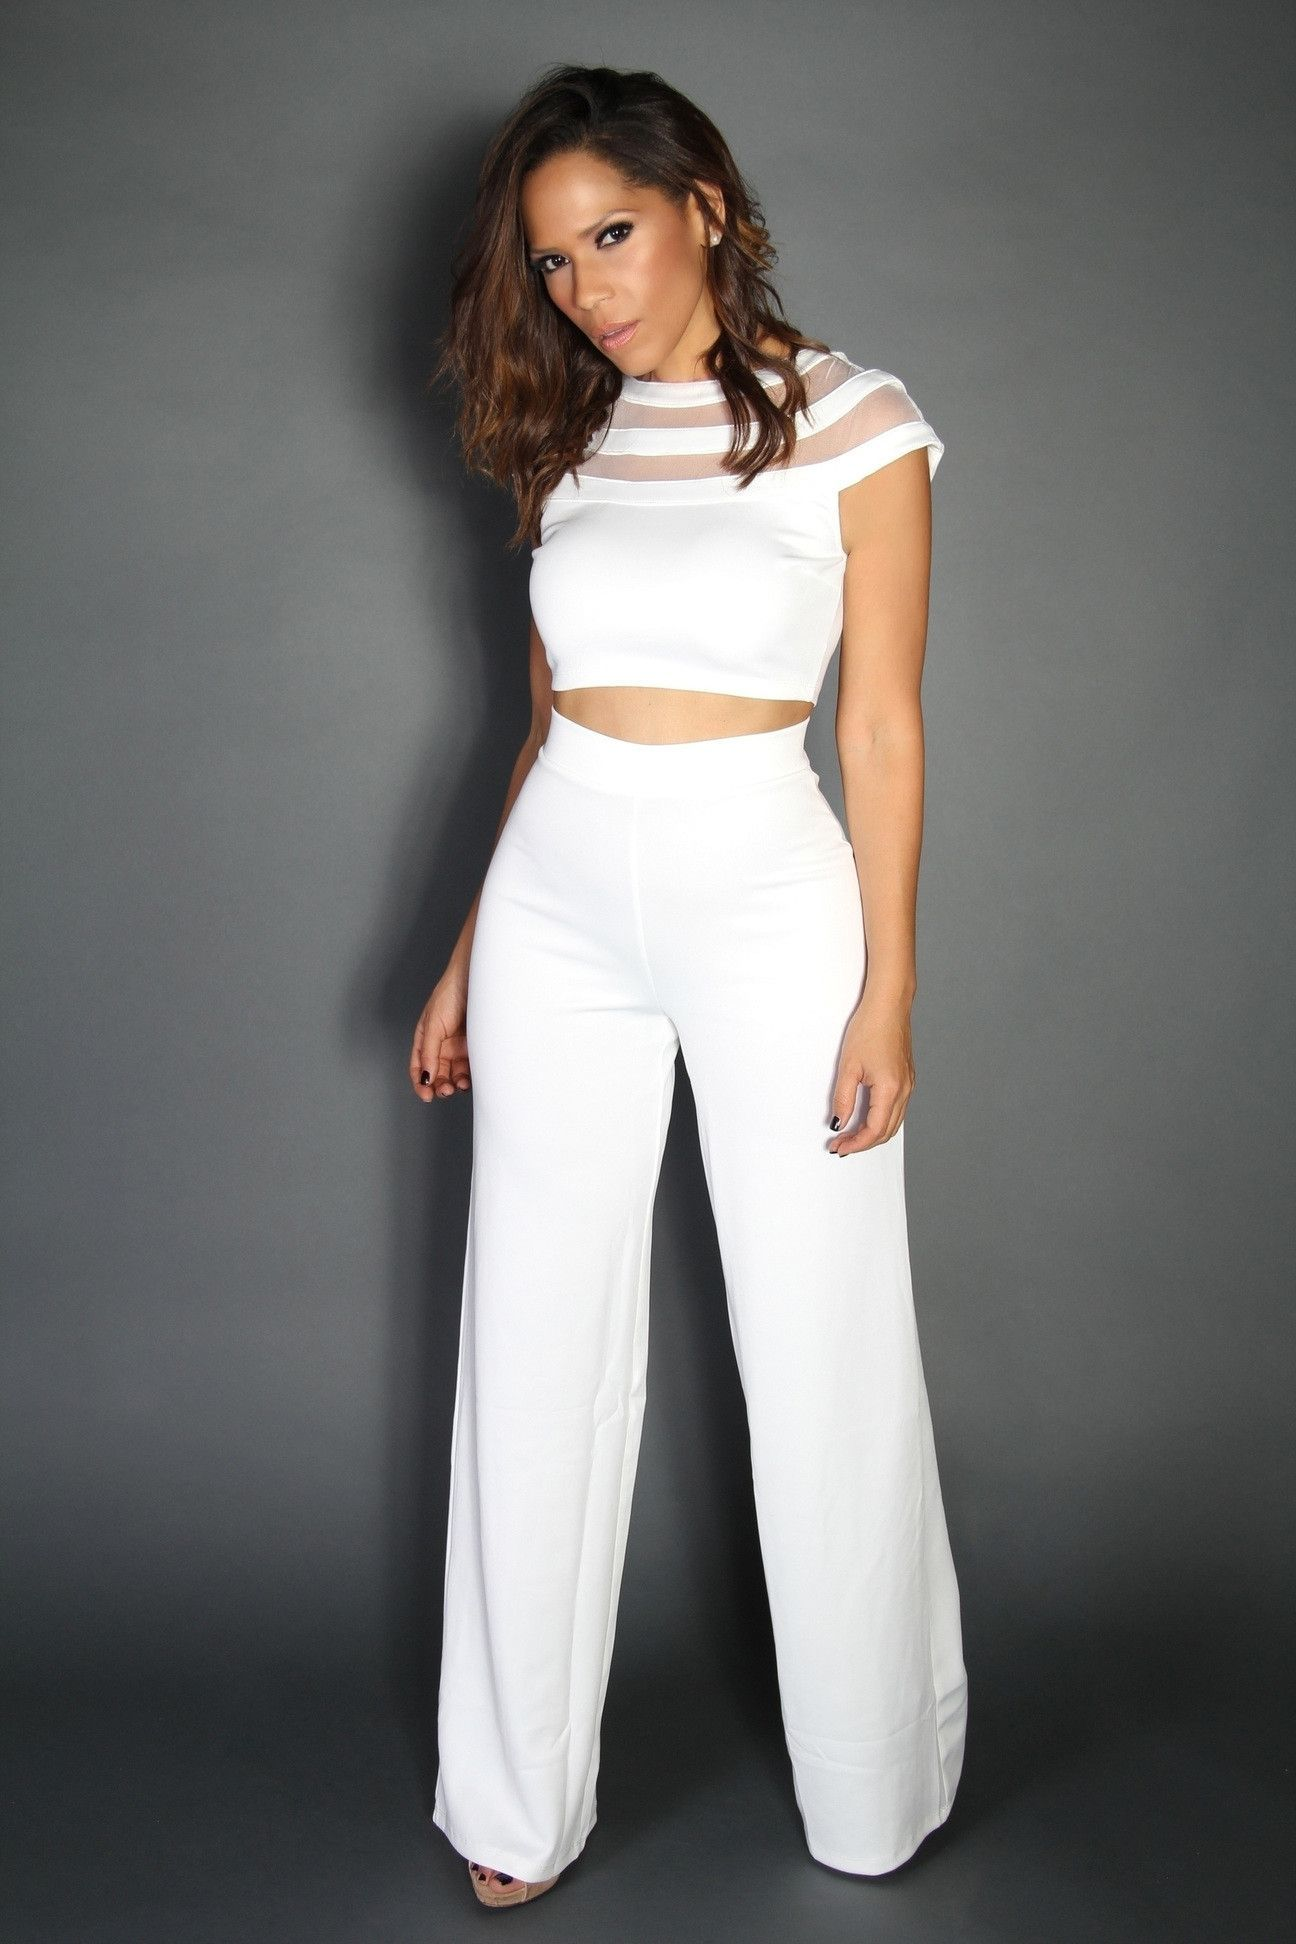 71d182b0f352 White Crop Top and High Waist Pants Two Piece Set | Fashion and ...